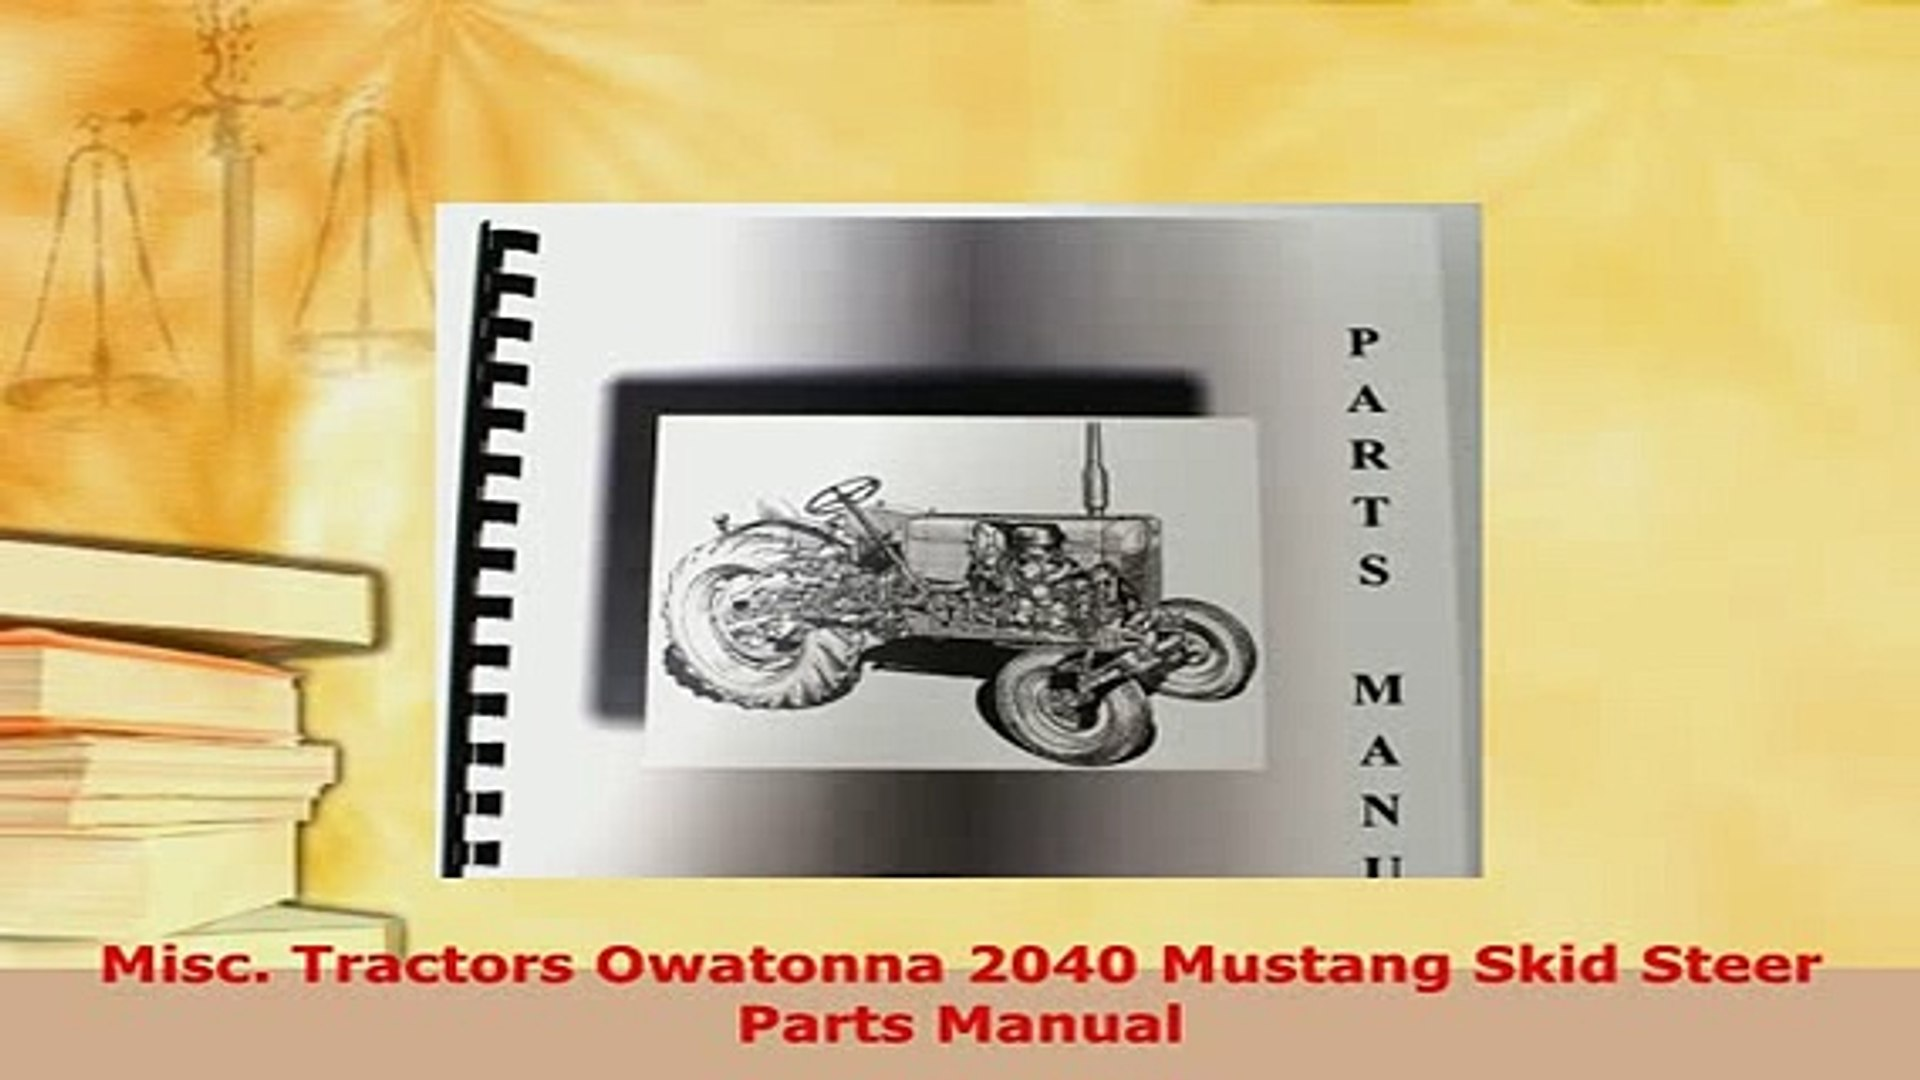 Download Misc Tractors Owatonna 2040 Mustang Skid Steer Parts Manual PDF  Full Ebook